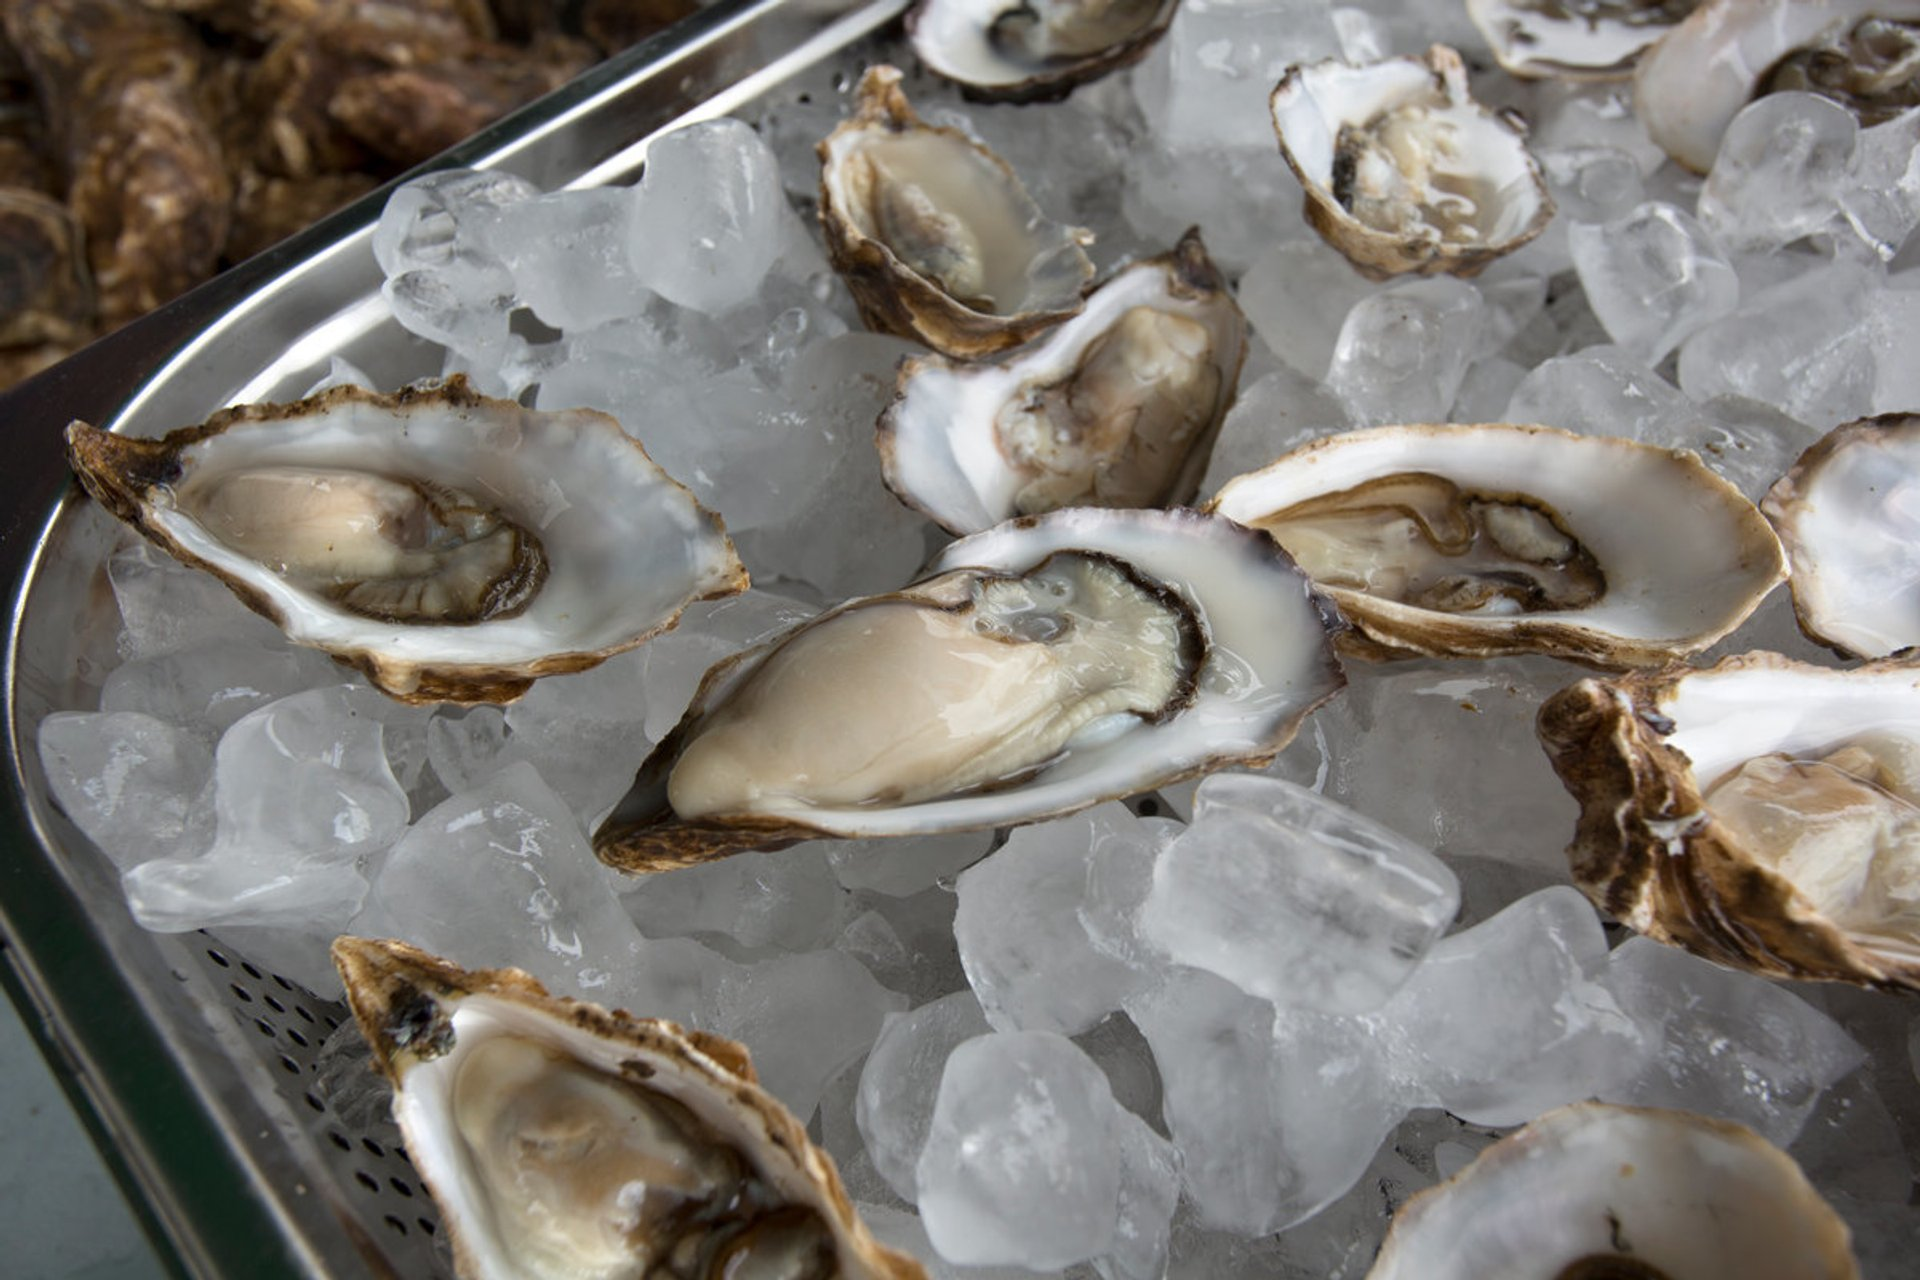 Oysters in Scotland - Best Season 2019